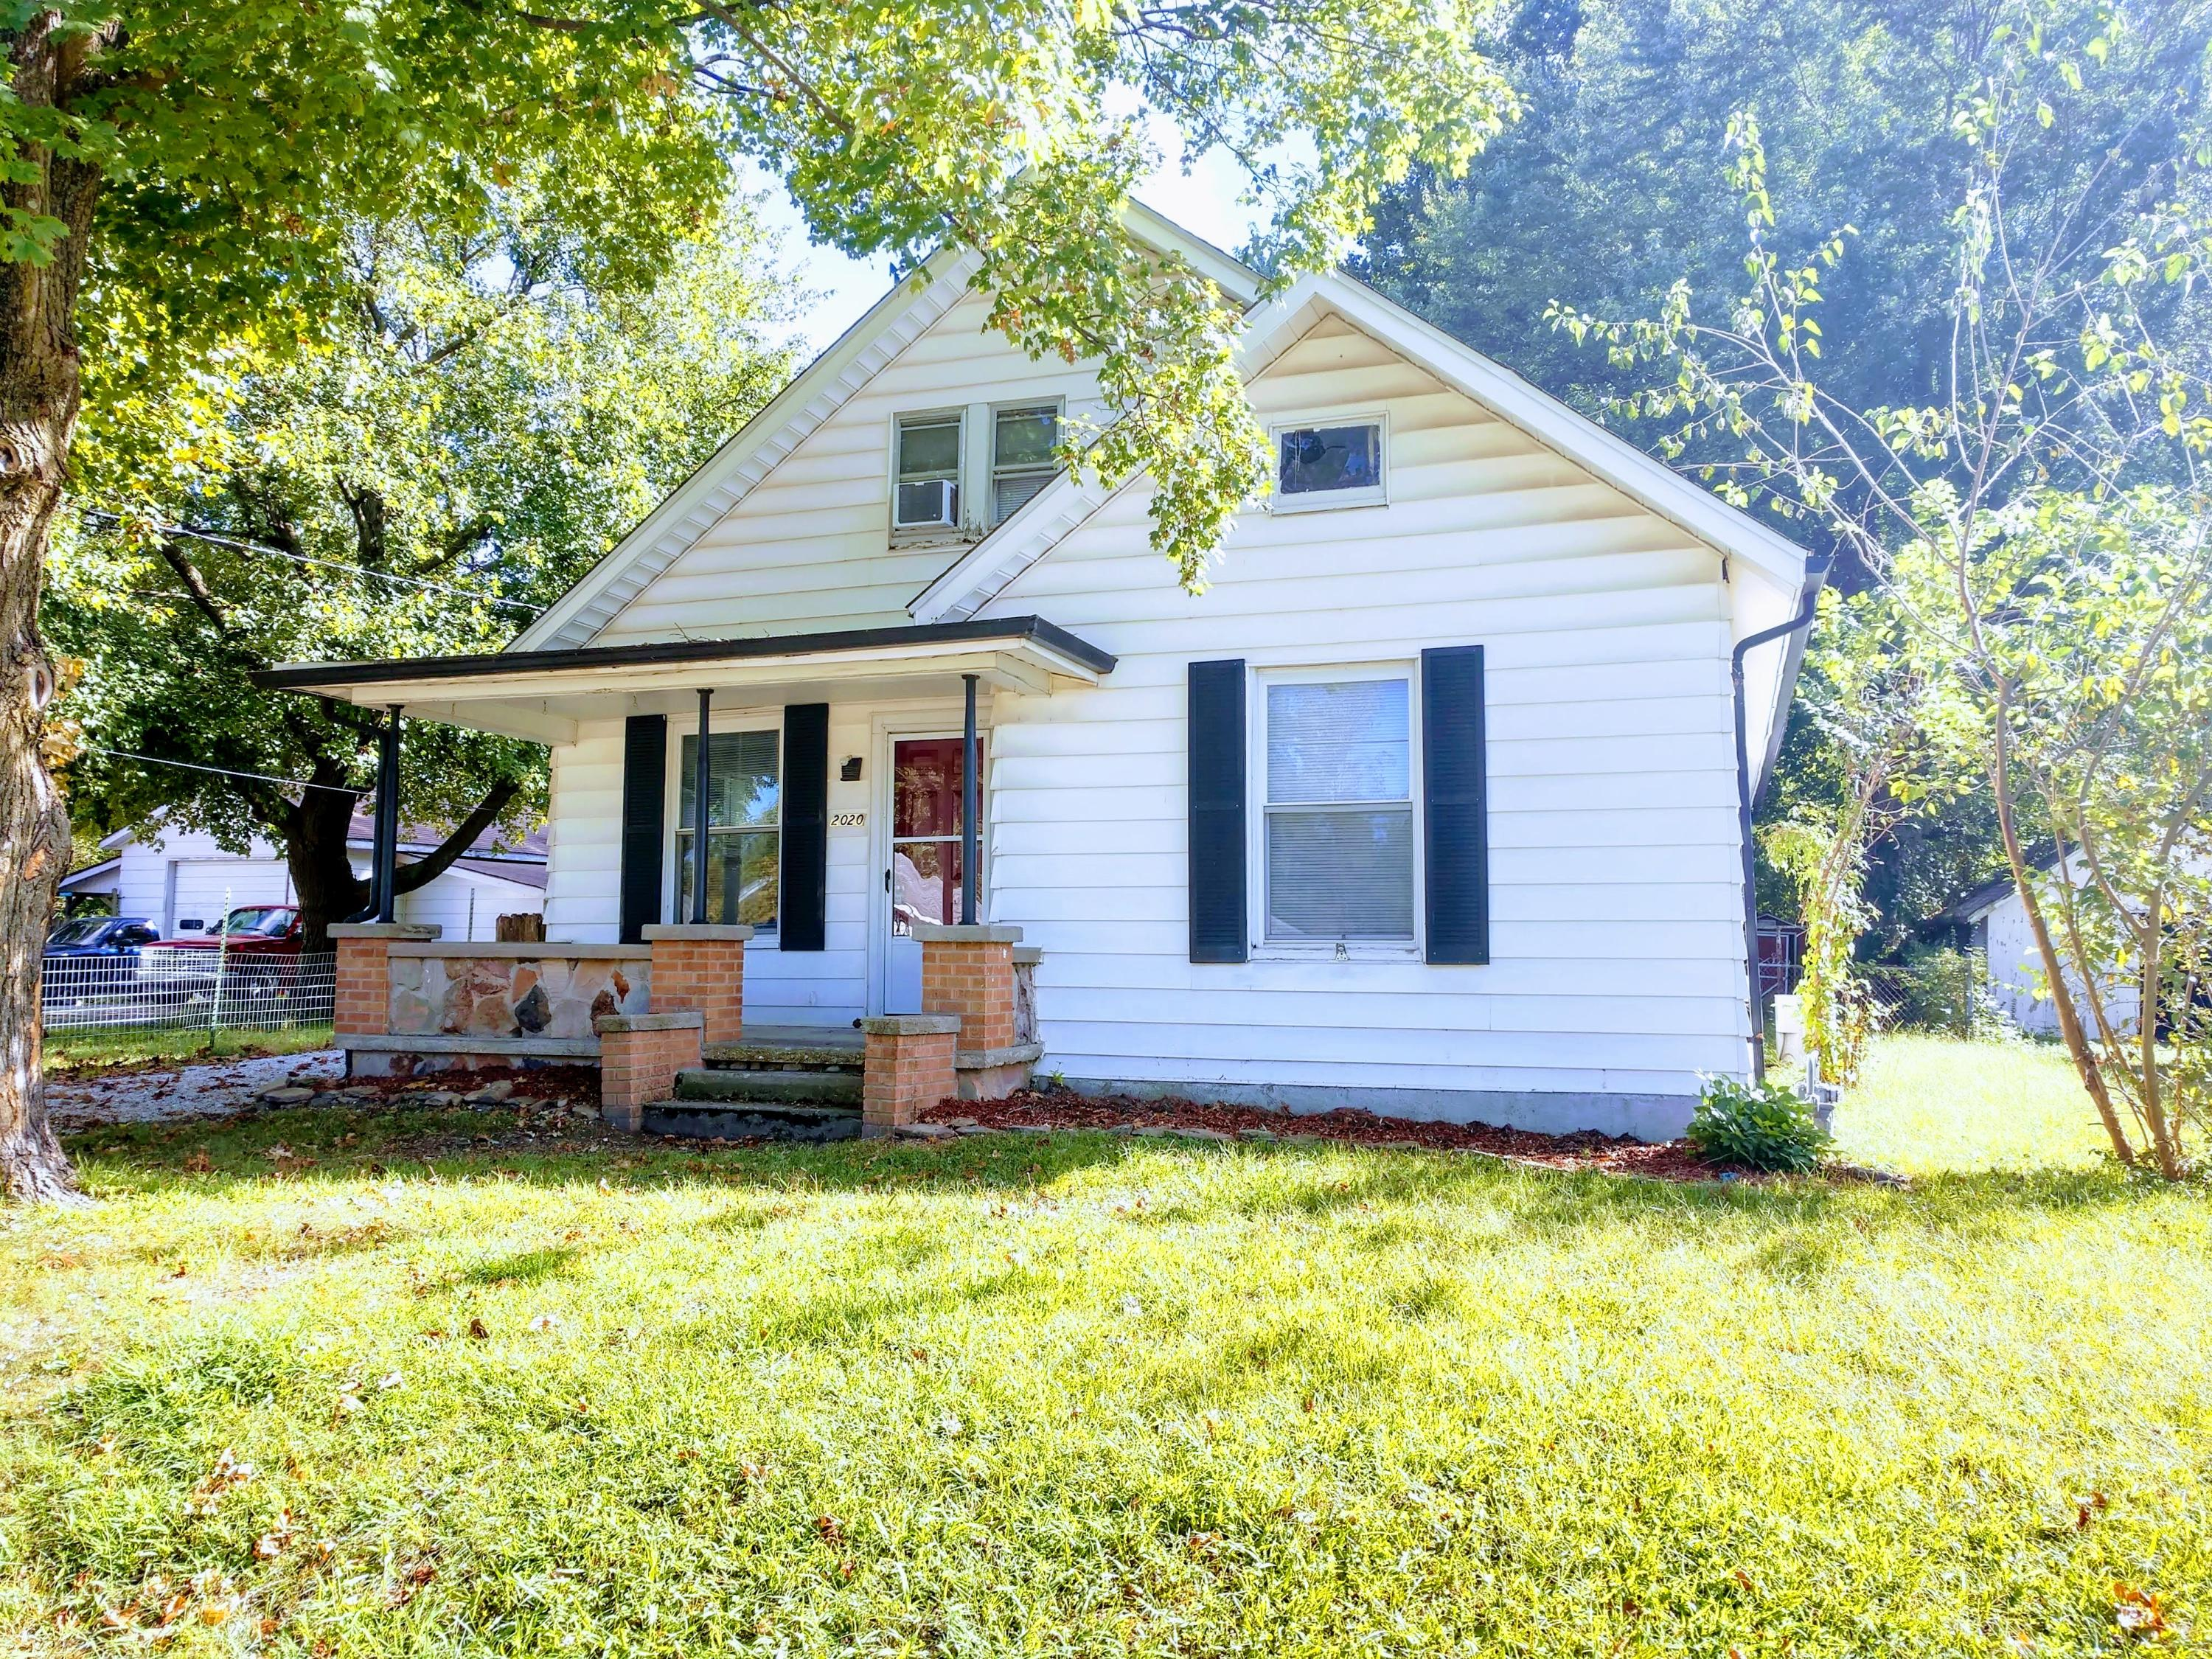 2020 West Atlantic Street Springfield, MO 65803